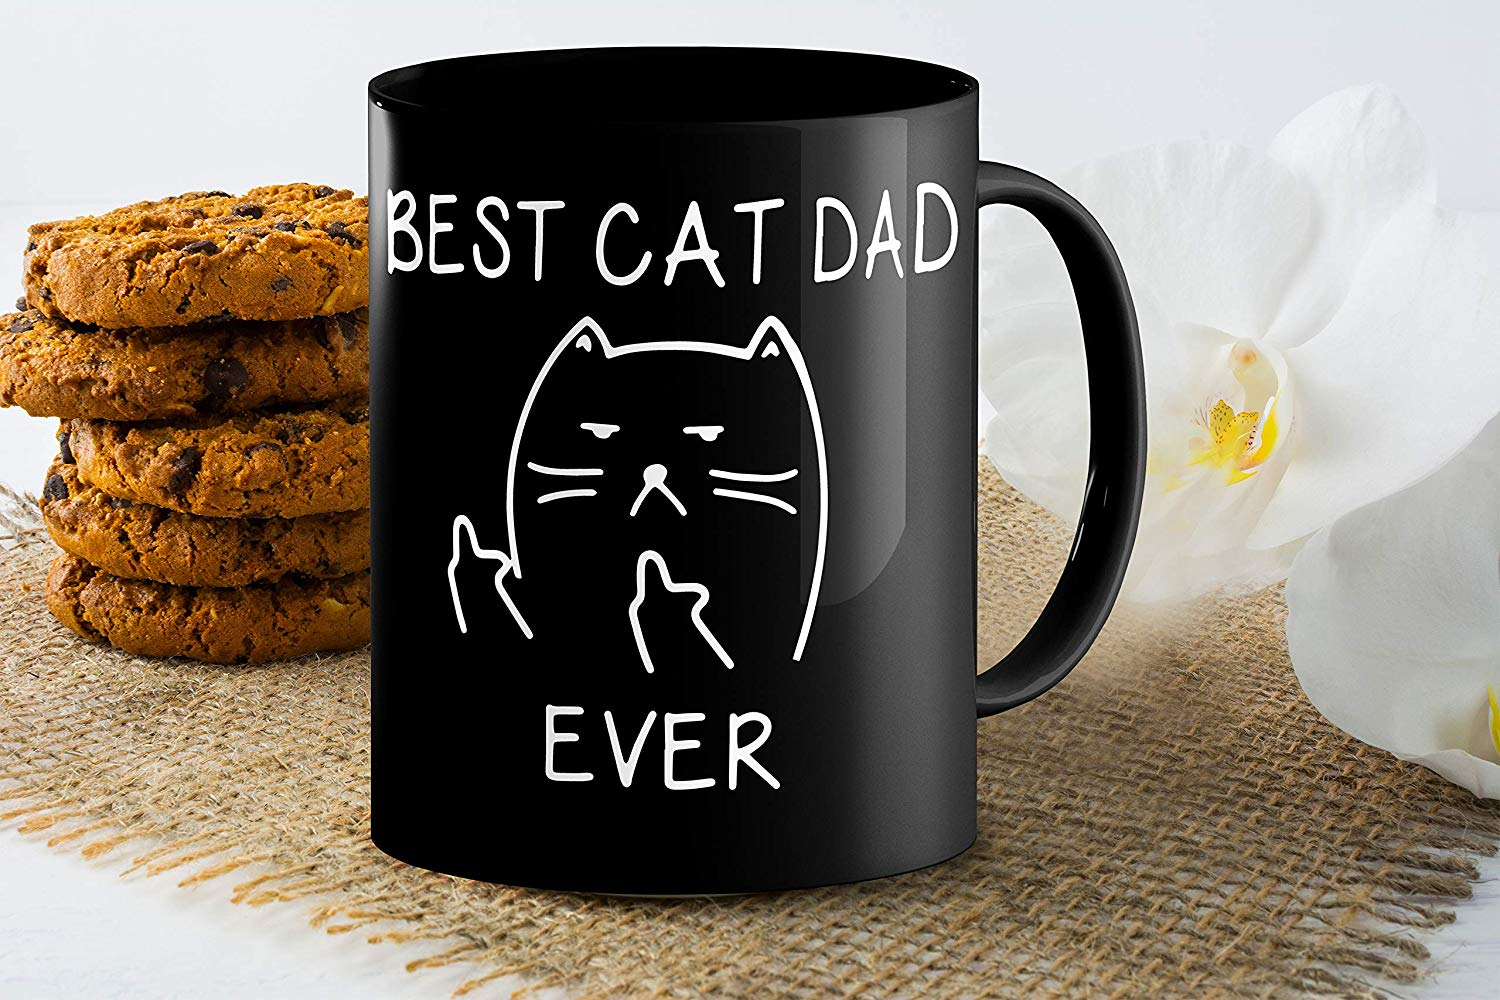 Best Cat Dad EverFunny Cat Lover Gifts Funny Middle Finger Black Coffee MugUnique Birthday Gift For Dad B079FVKRCM 5